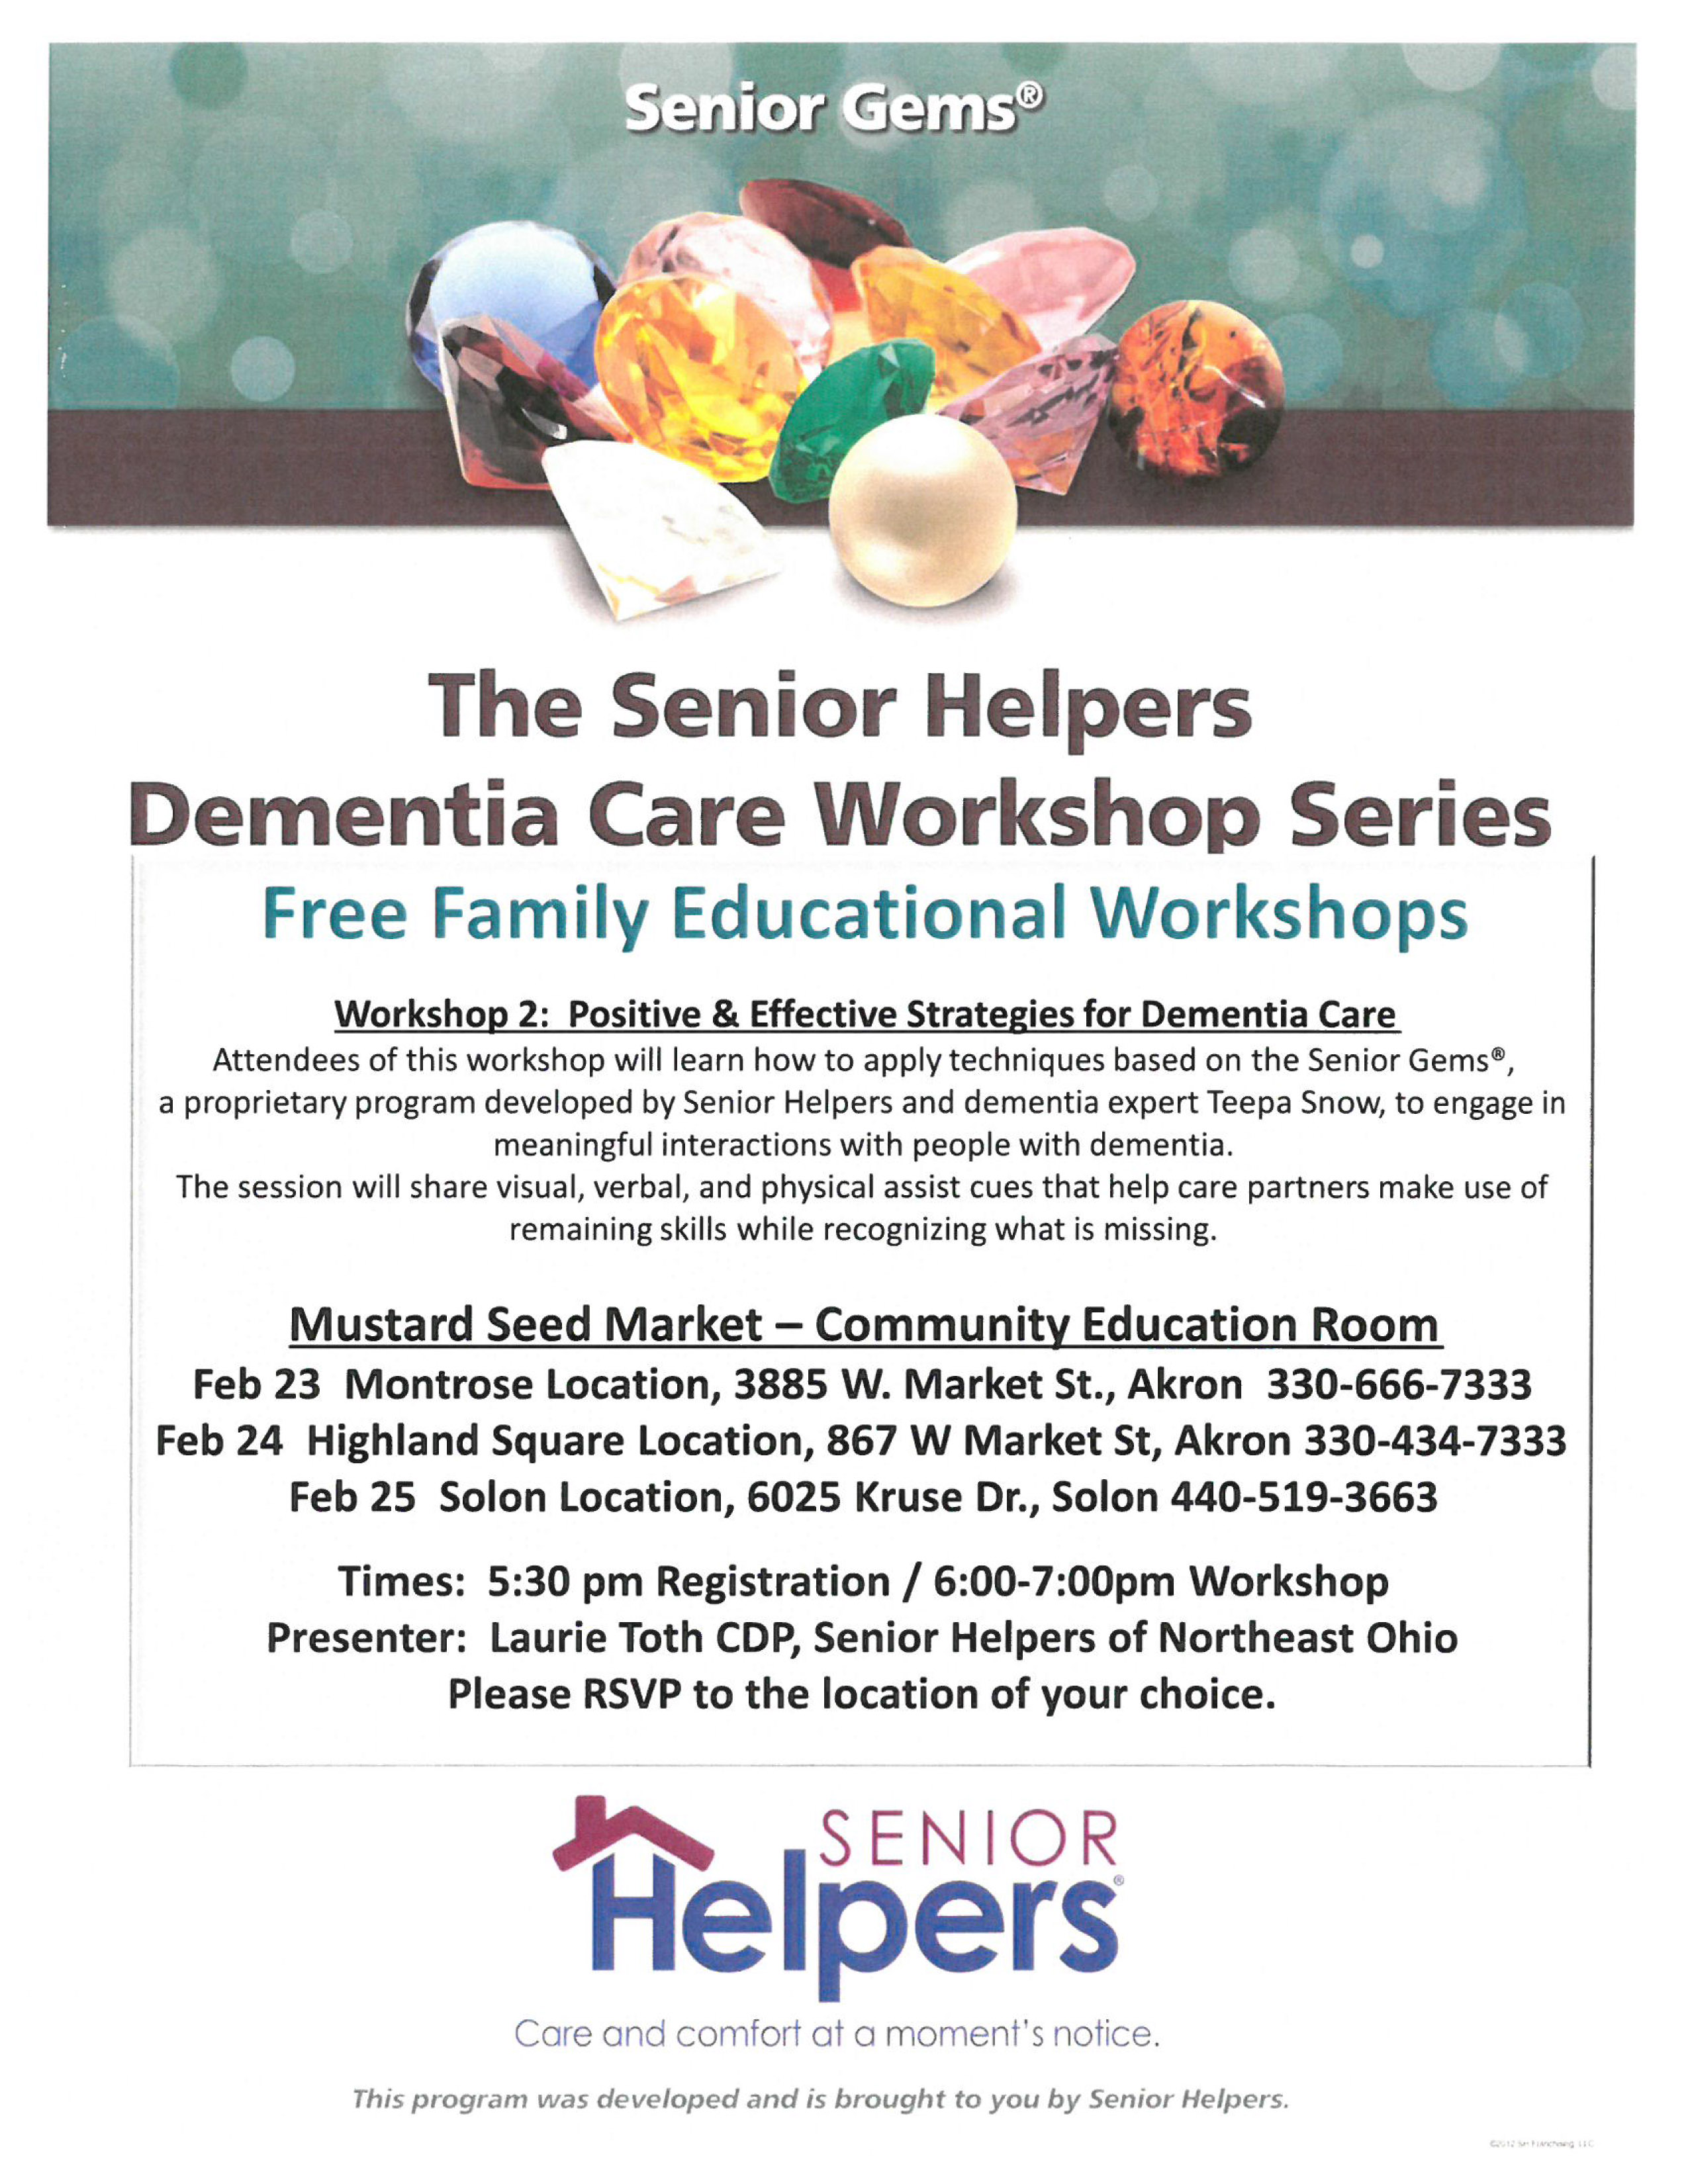 Positive and Effective Strategies for Dementia Care presented by